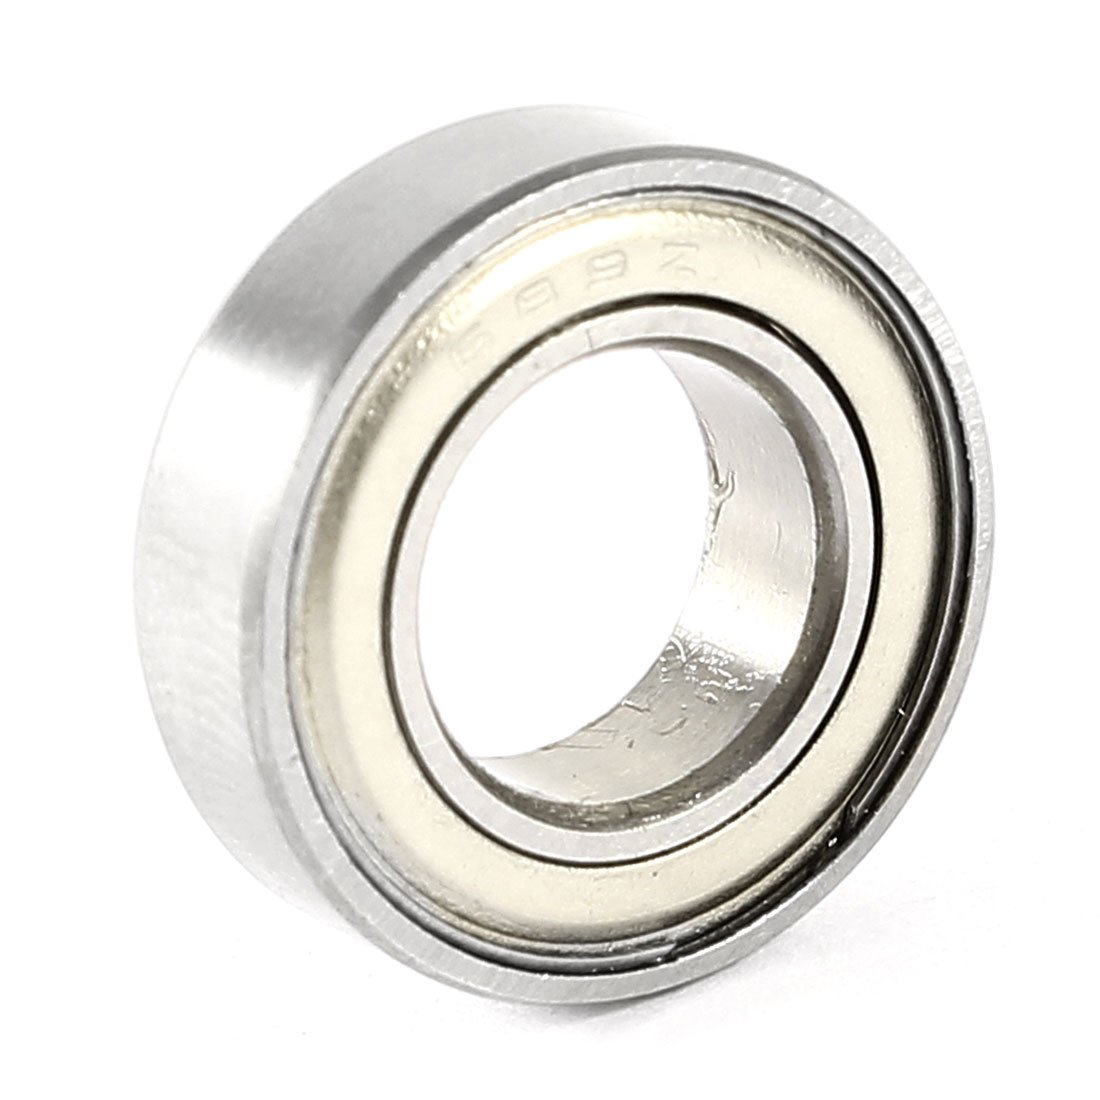 Uxcell a14030500ux0260 9mmx17mmx5mm Sealed Single Row Deep Groove Ball Wheel Bearing 689Z, 0.35 Metal